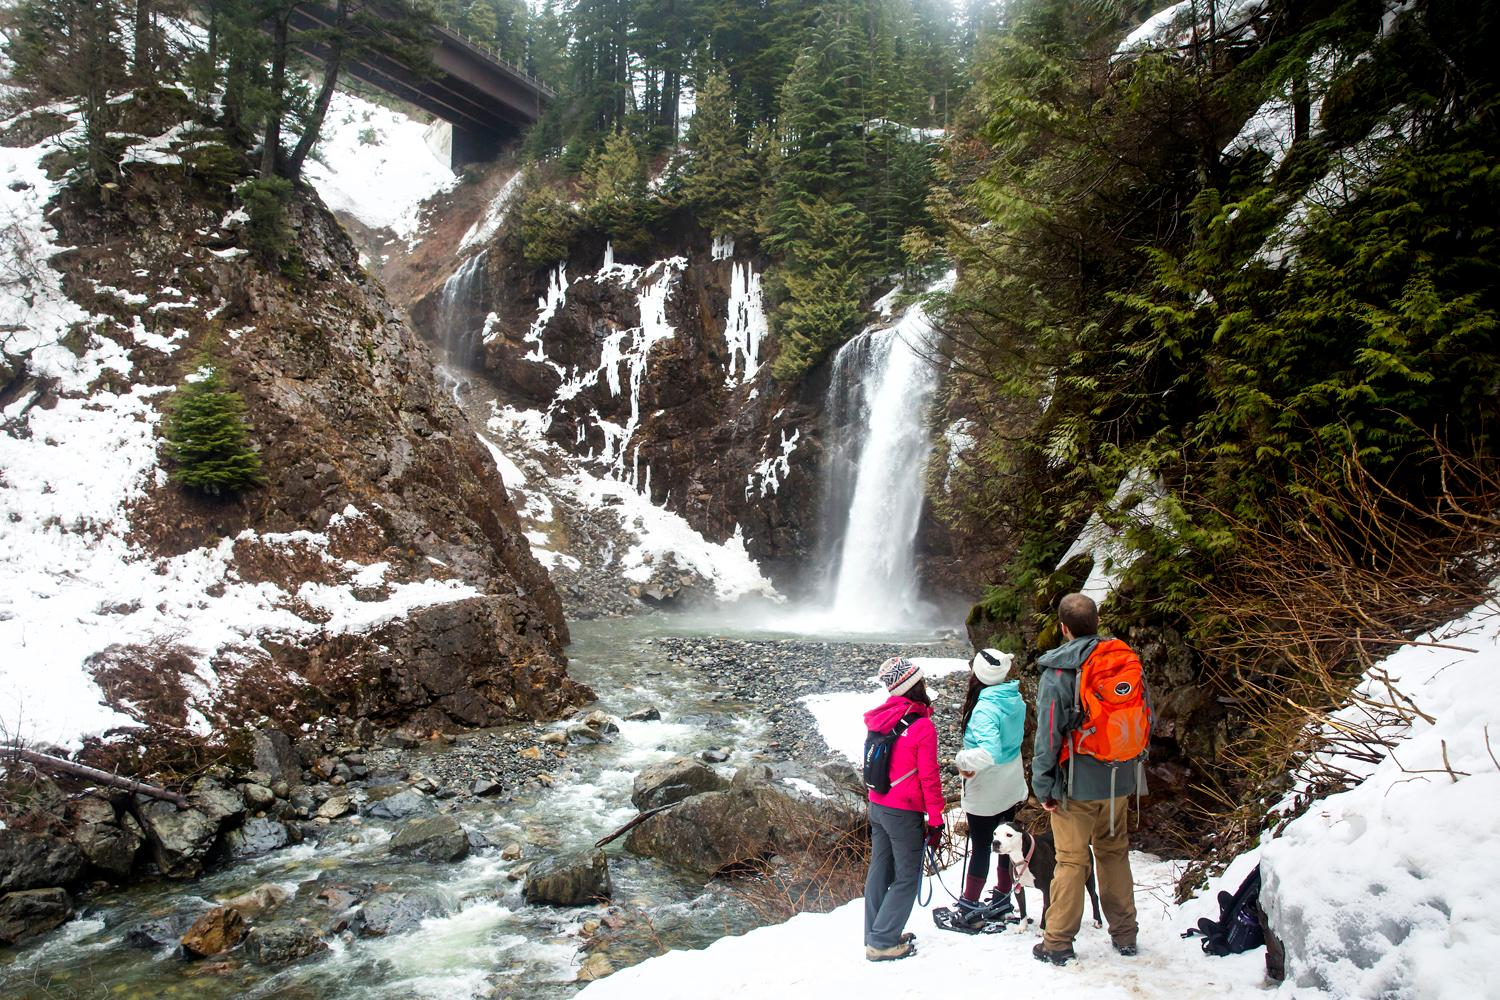 Although we were hoping for more snow, what's there not to love about Franklin Falls? Especially considering it's a short drive from Seattle and a 2 mile hike roundtrip with only 400 feet of elevation gain. For more information, hike updates, and directions to this beautiful gem, check out the hike on the Washington Trail Association's website. (Sy Bean / Seattle Refined)